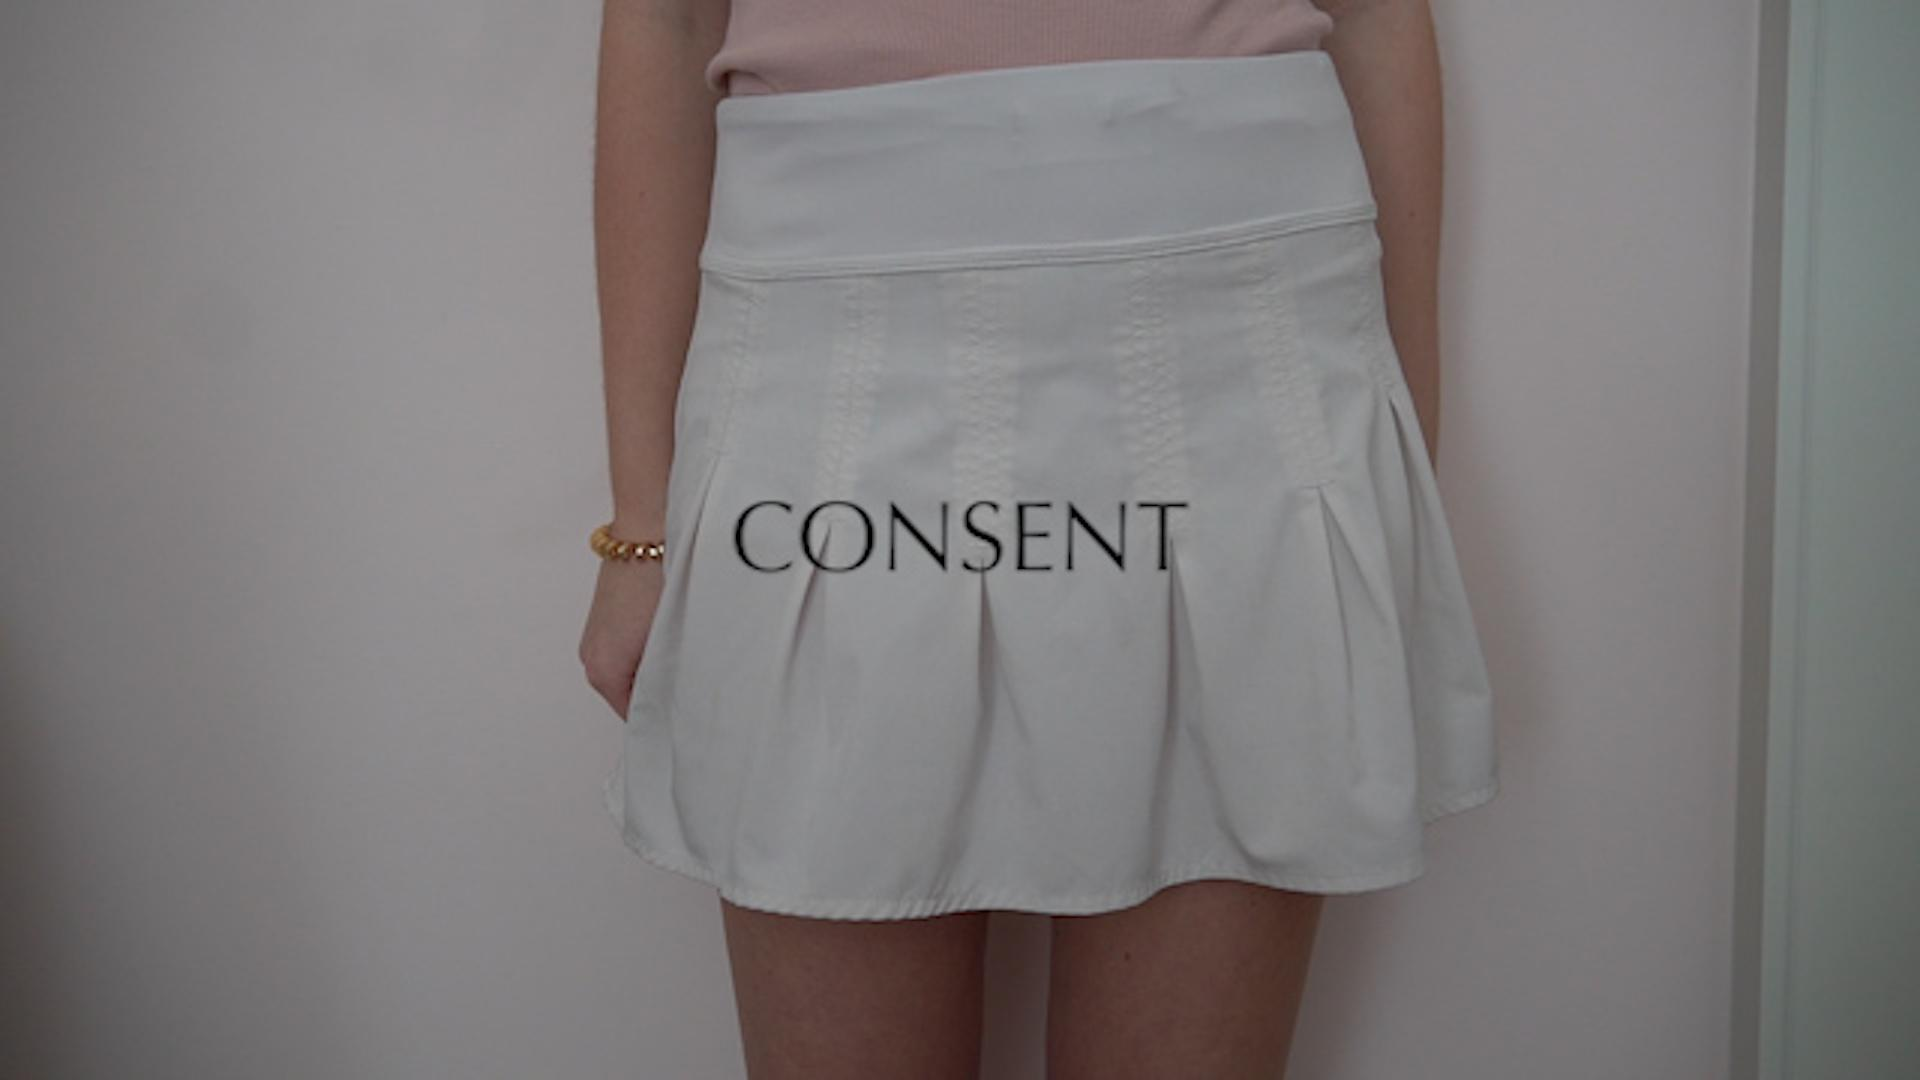 Consent: How Rape Culture Affects Teen Development and Relationships